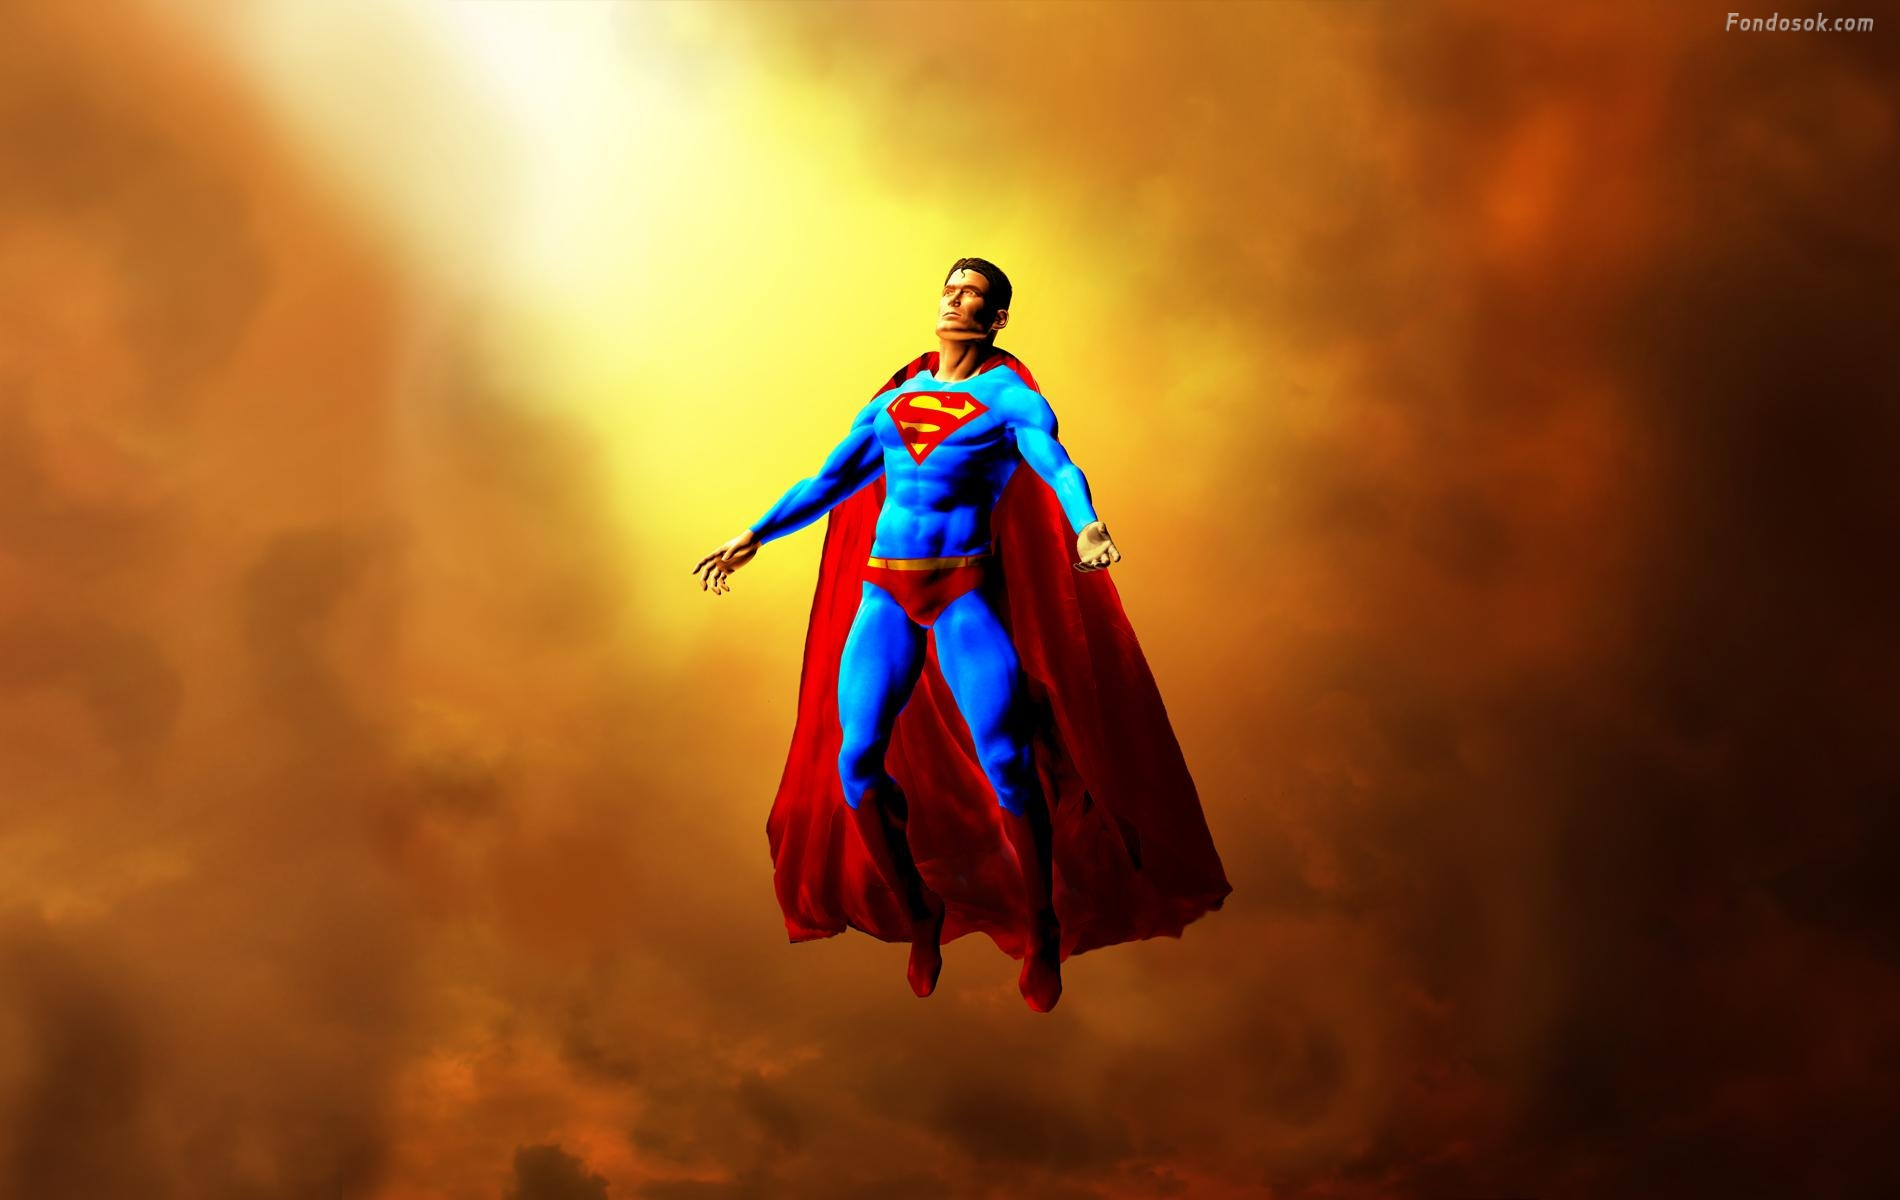 Superman Wallpaper Widescreen | Wide Screen Wallpaper 1080p,2K,4K